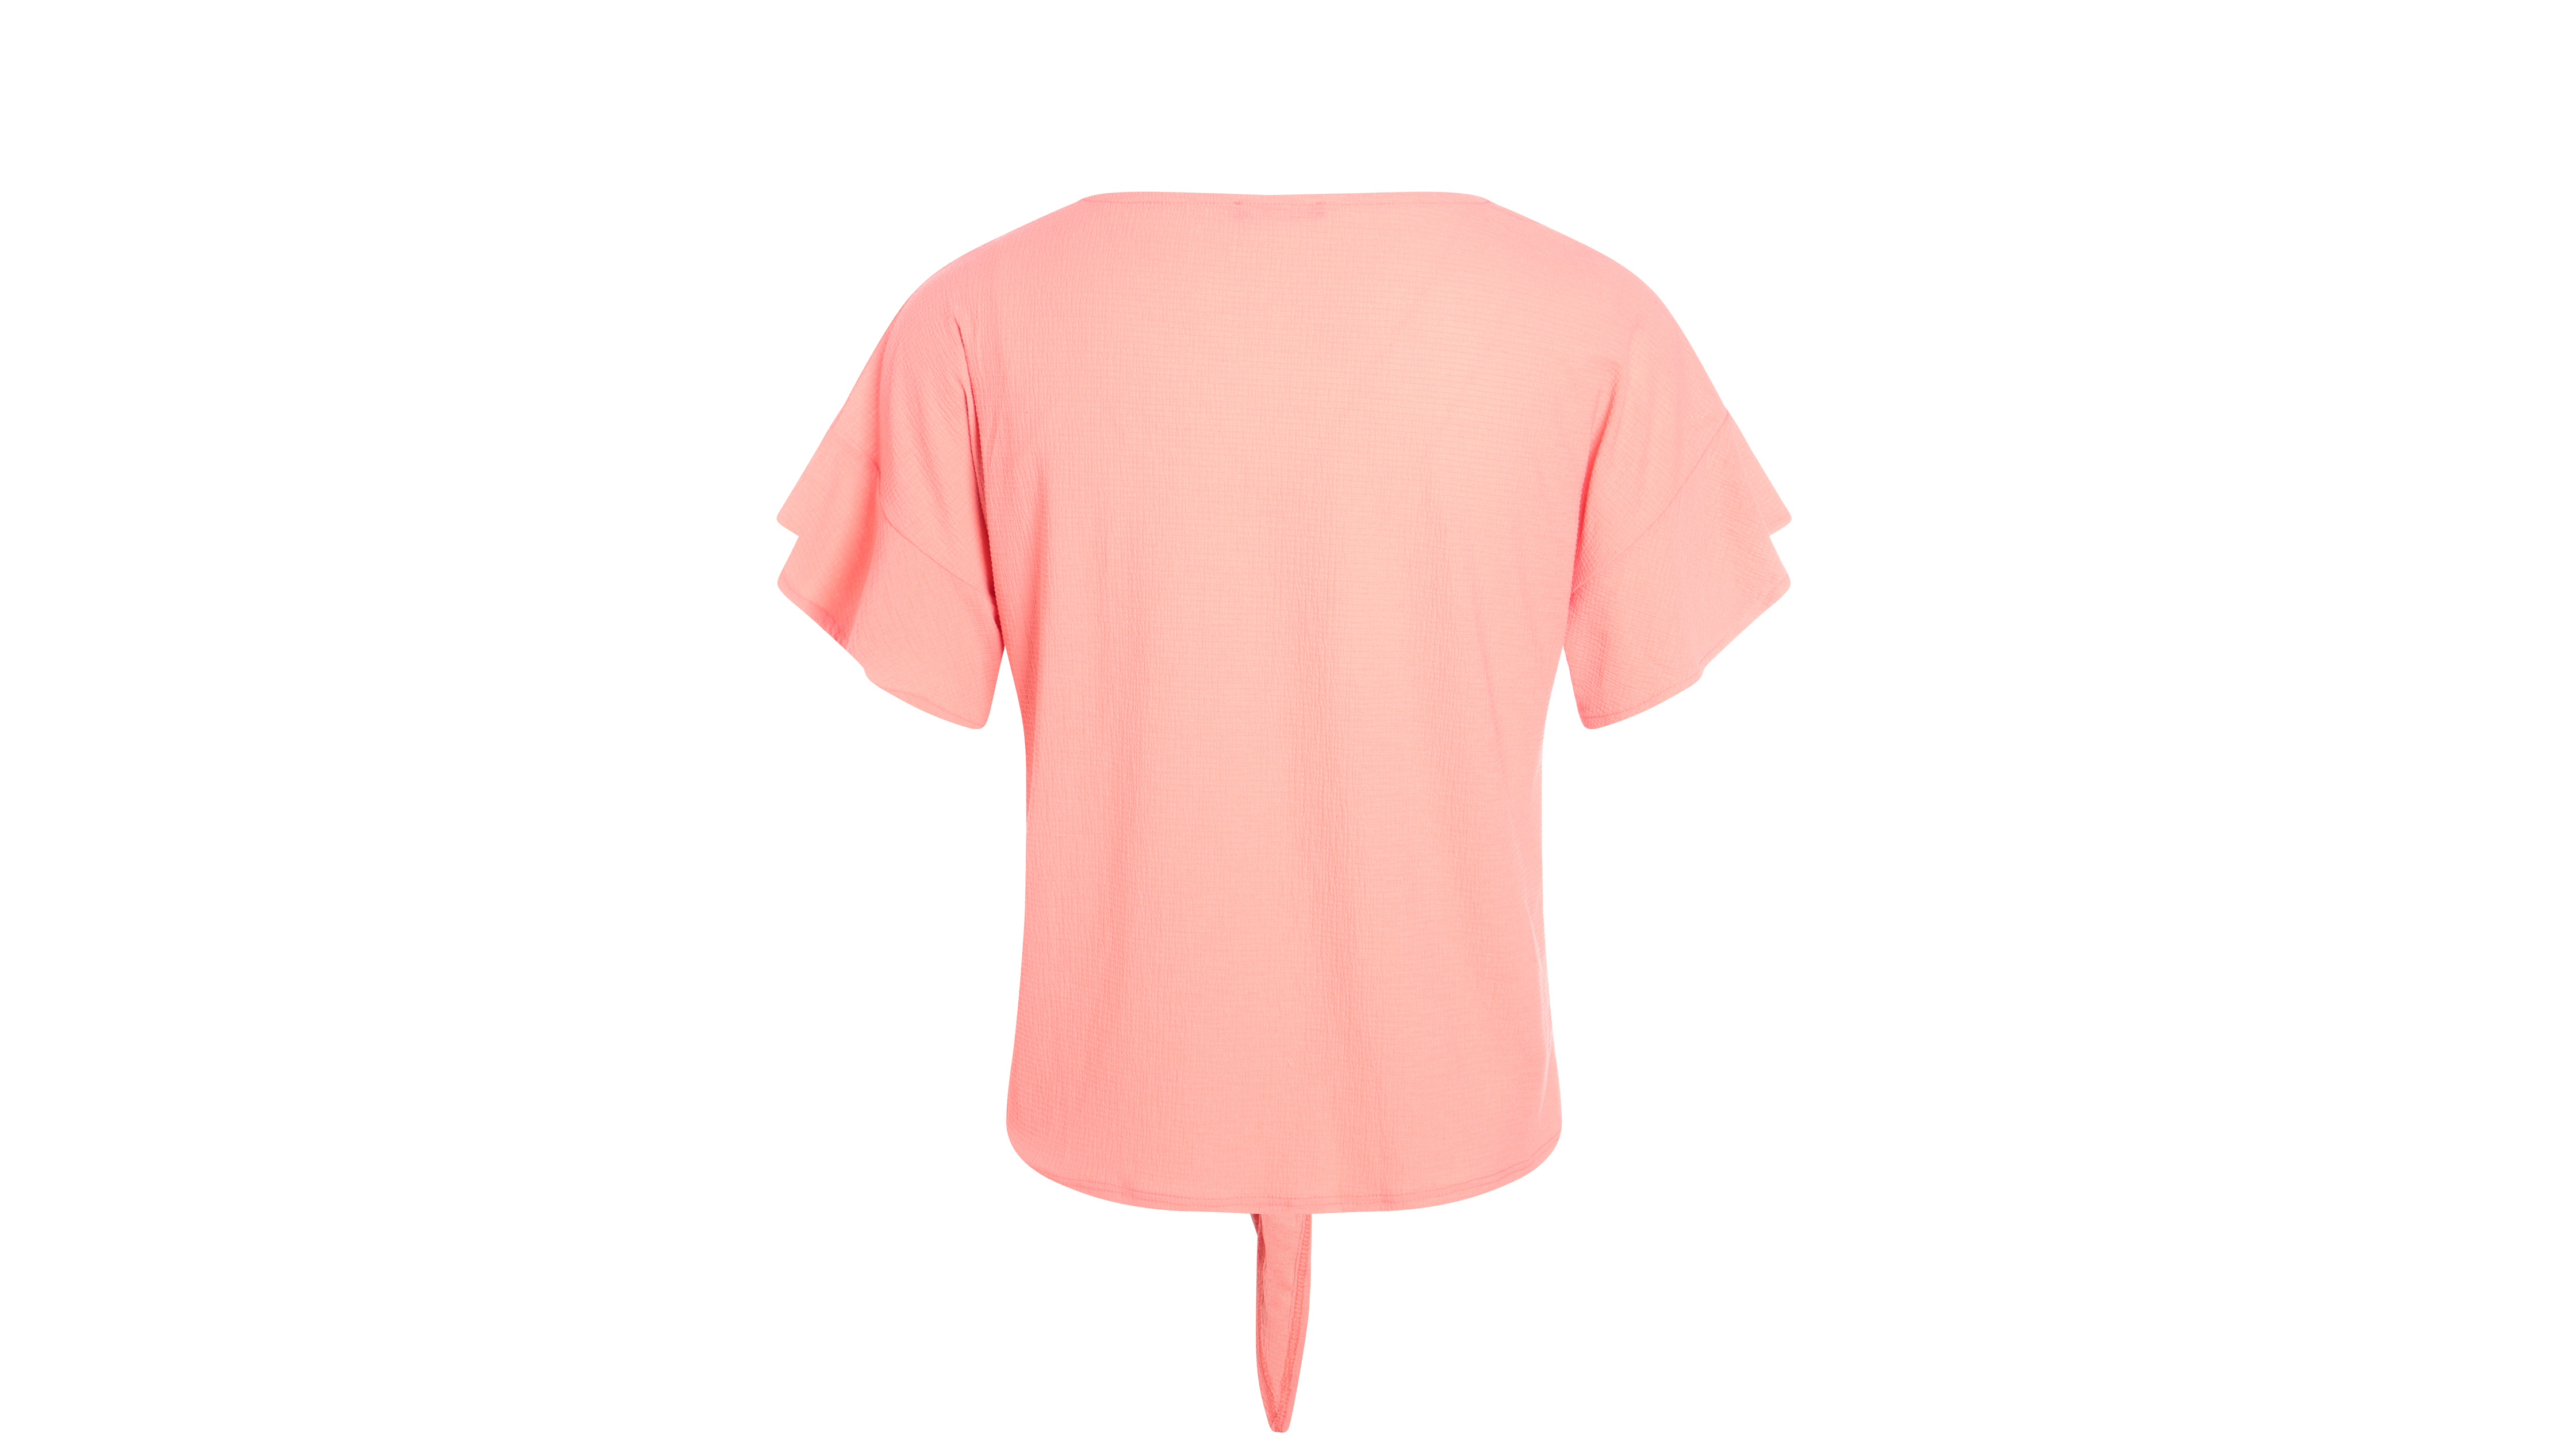 Coral Front Light Camiseta Tying Mujer In Orange IbgmYyf76v